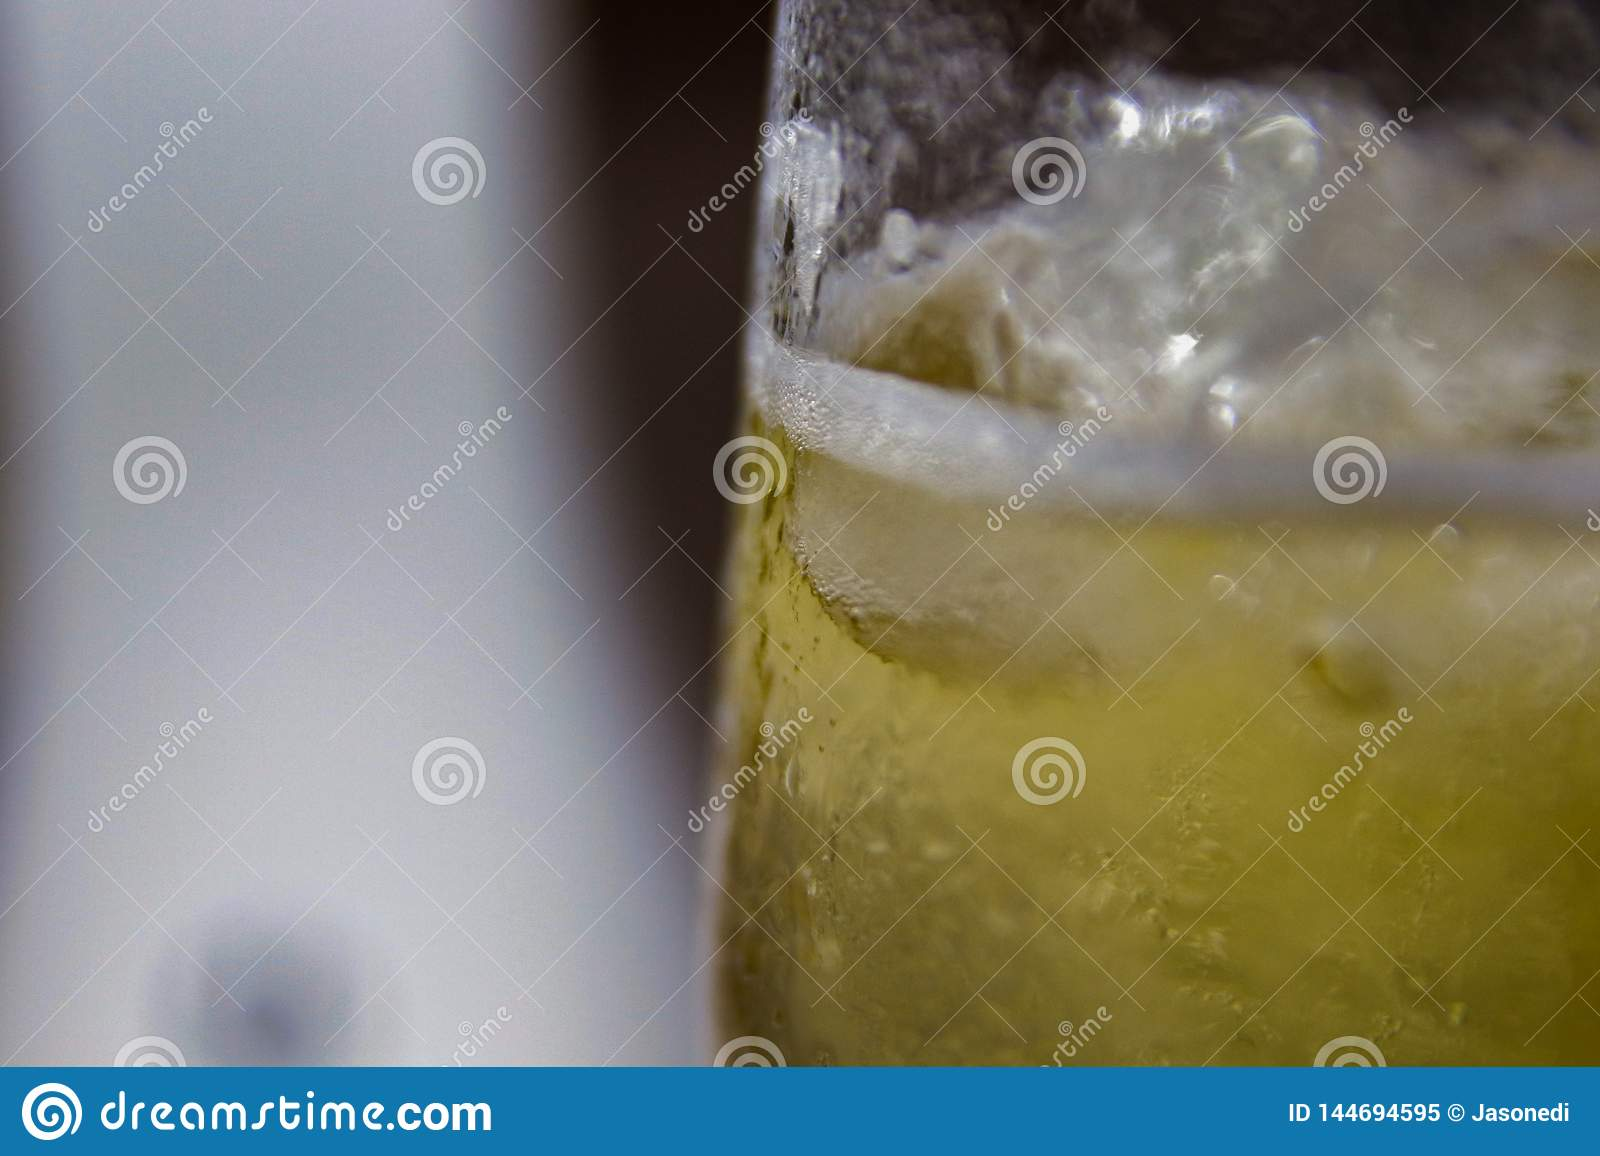 Glass of cold beer with condensed water